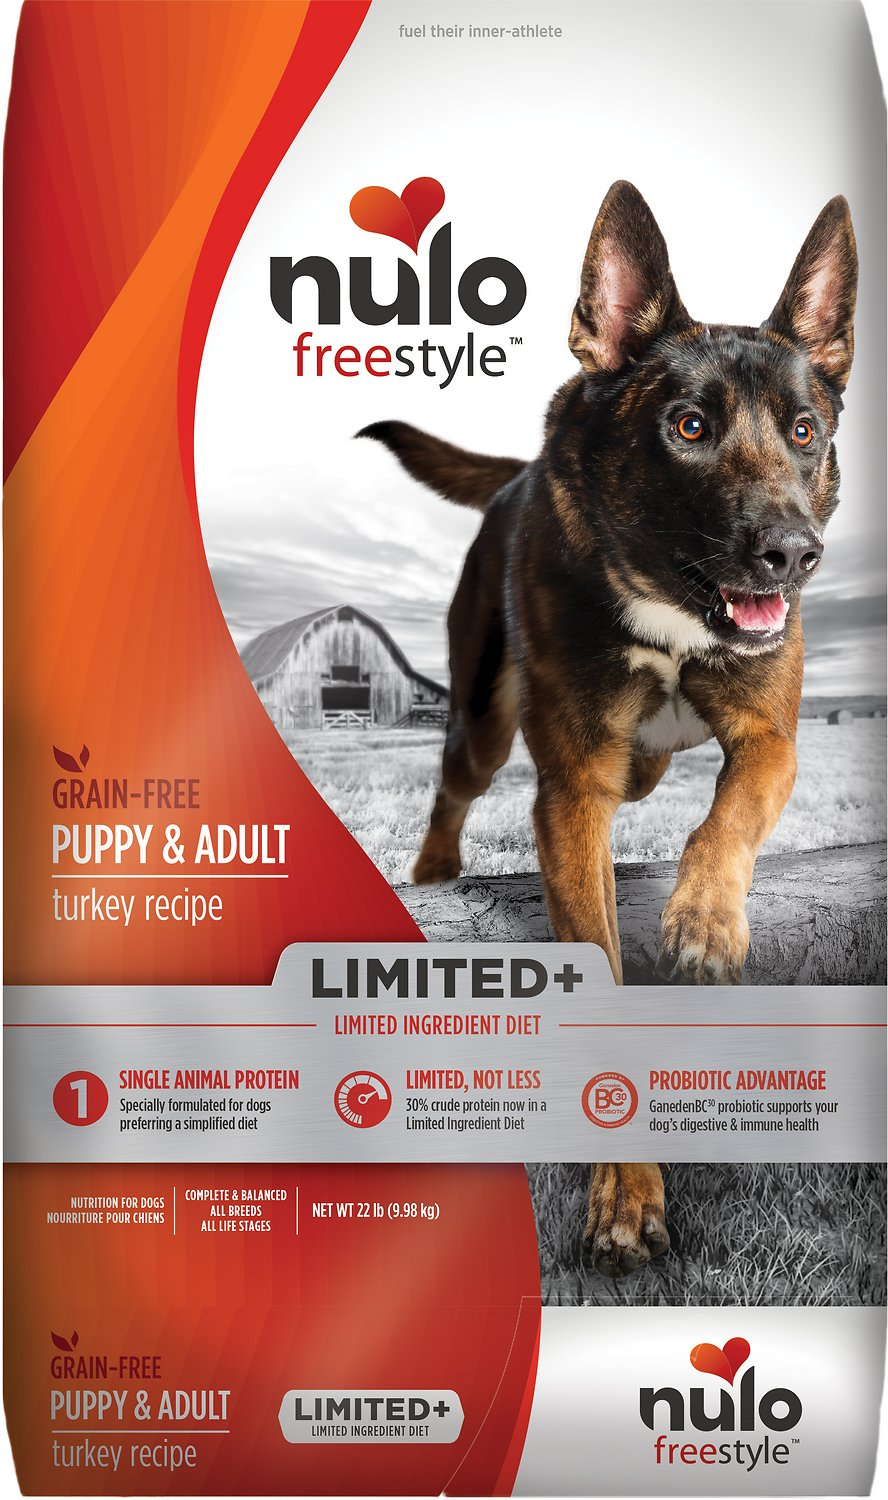 Nulo Dog Freestyle Limited+ Turkey Recipe Grain-Free Puppy & Adult Dry Dog Food Image